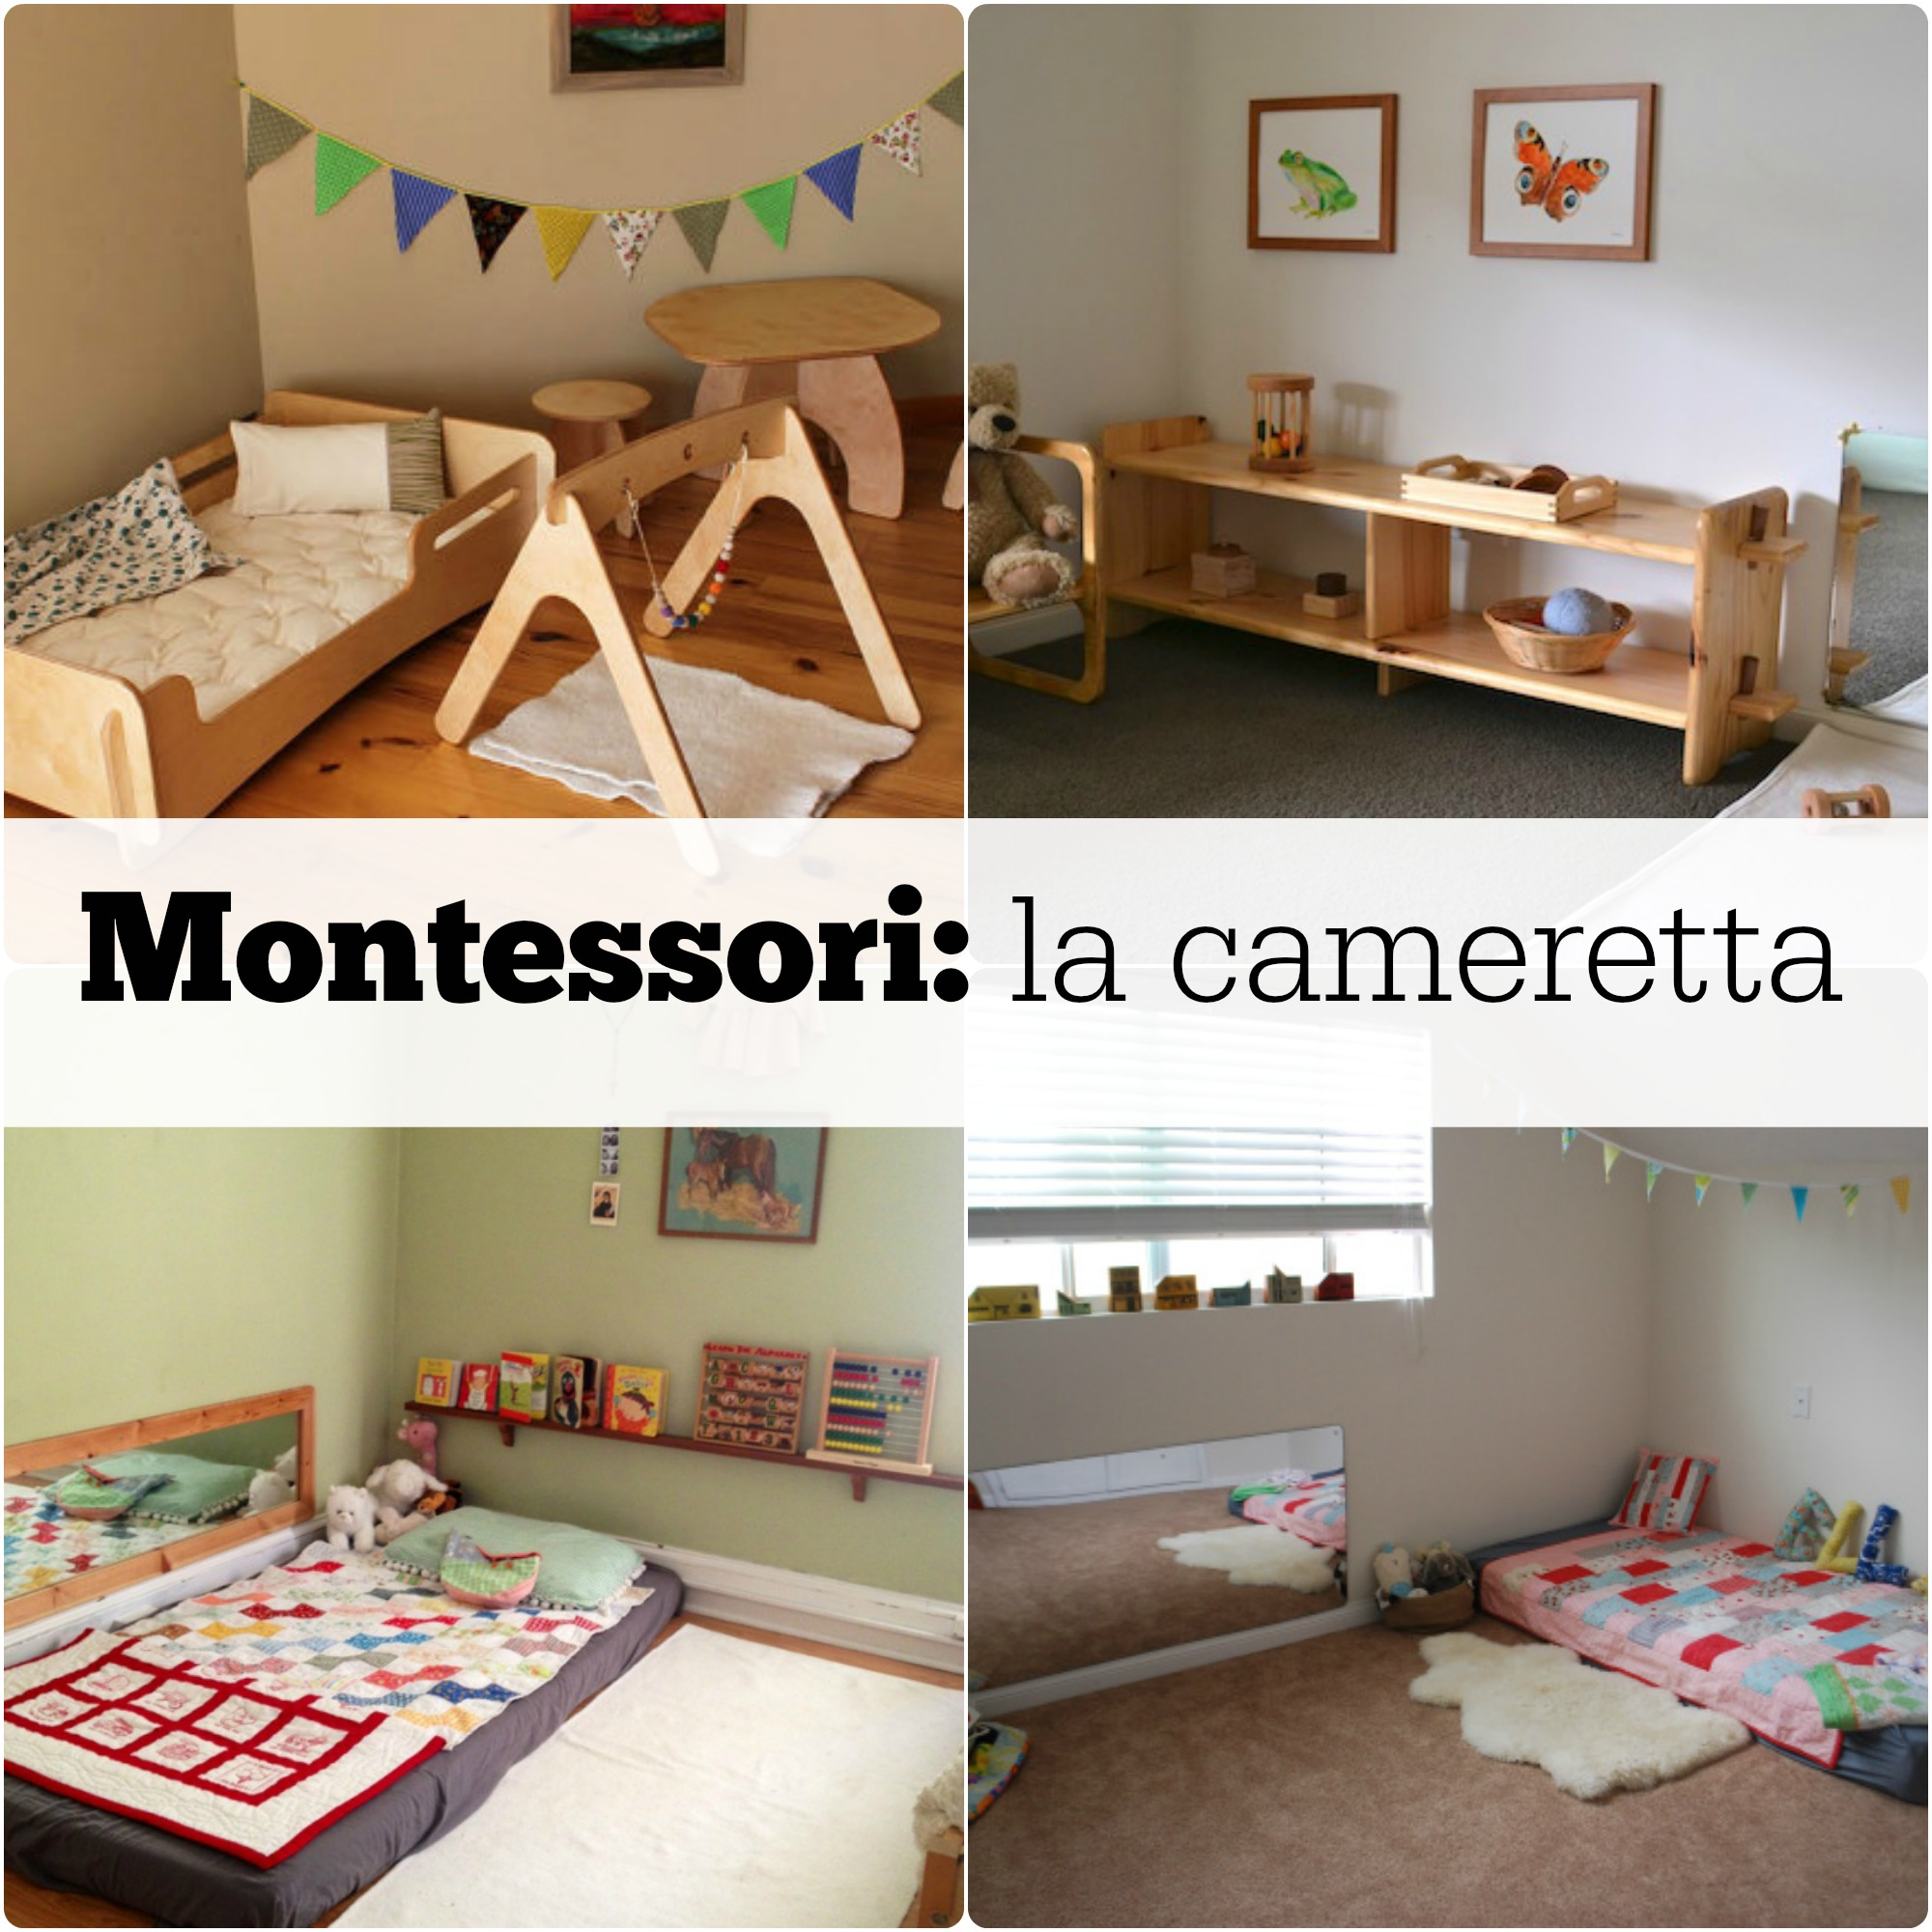 https://www.babygreen.it/wp-content/uploads/2015/02/cameretta-montessori-tx.jpg